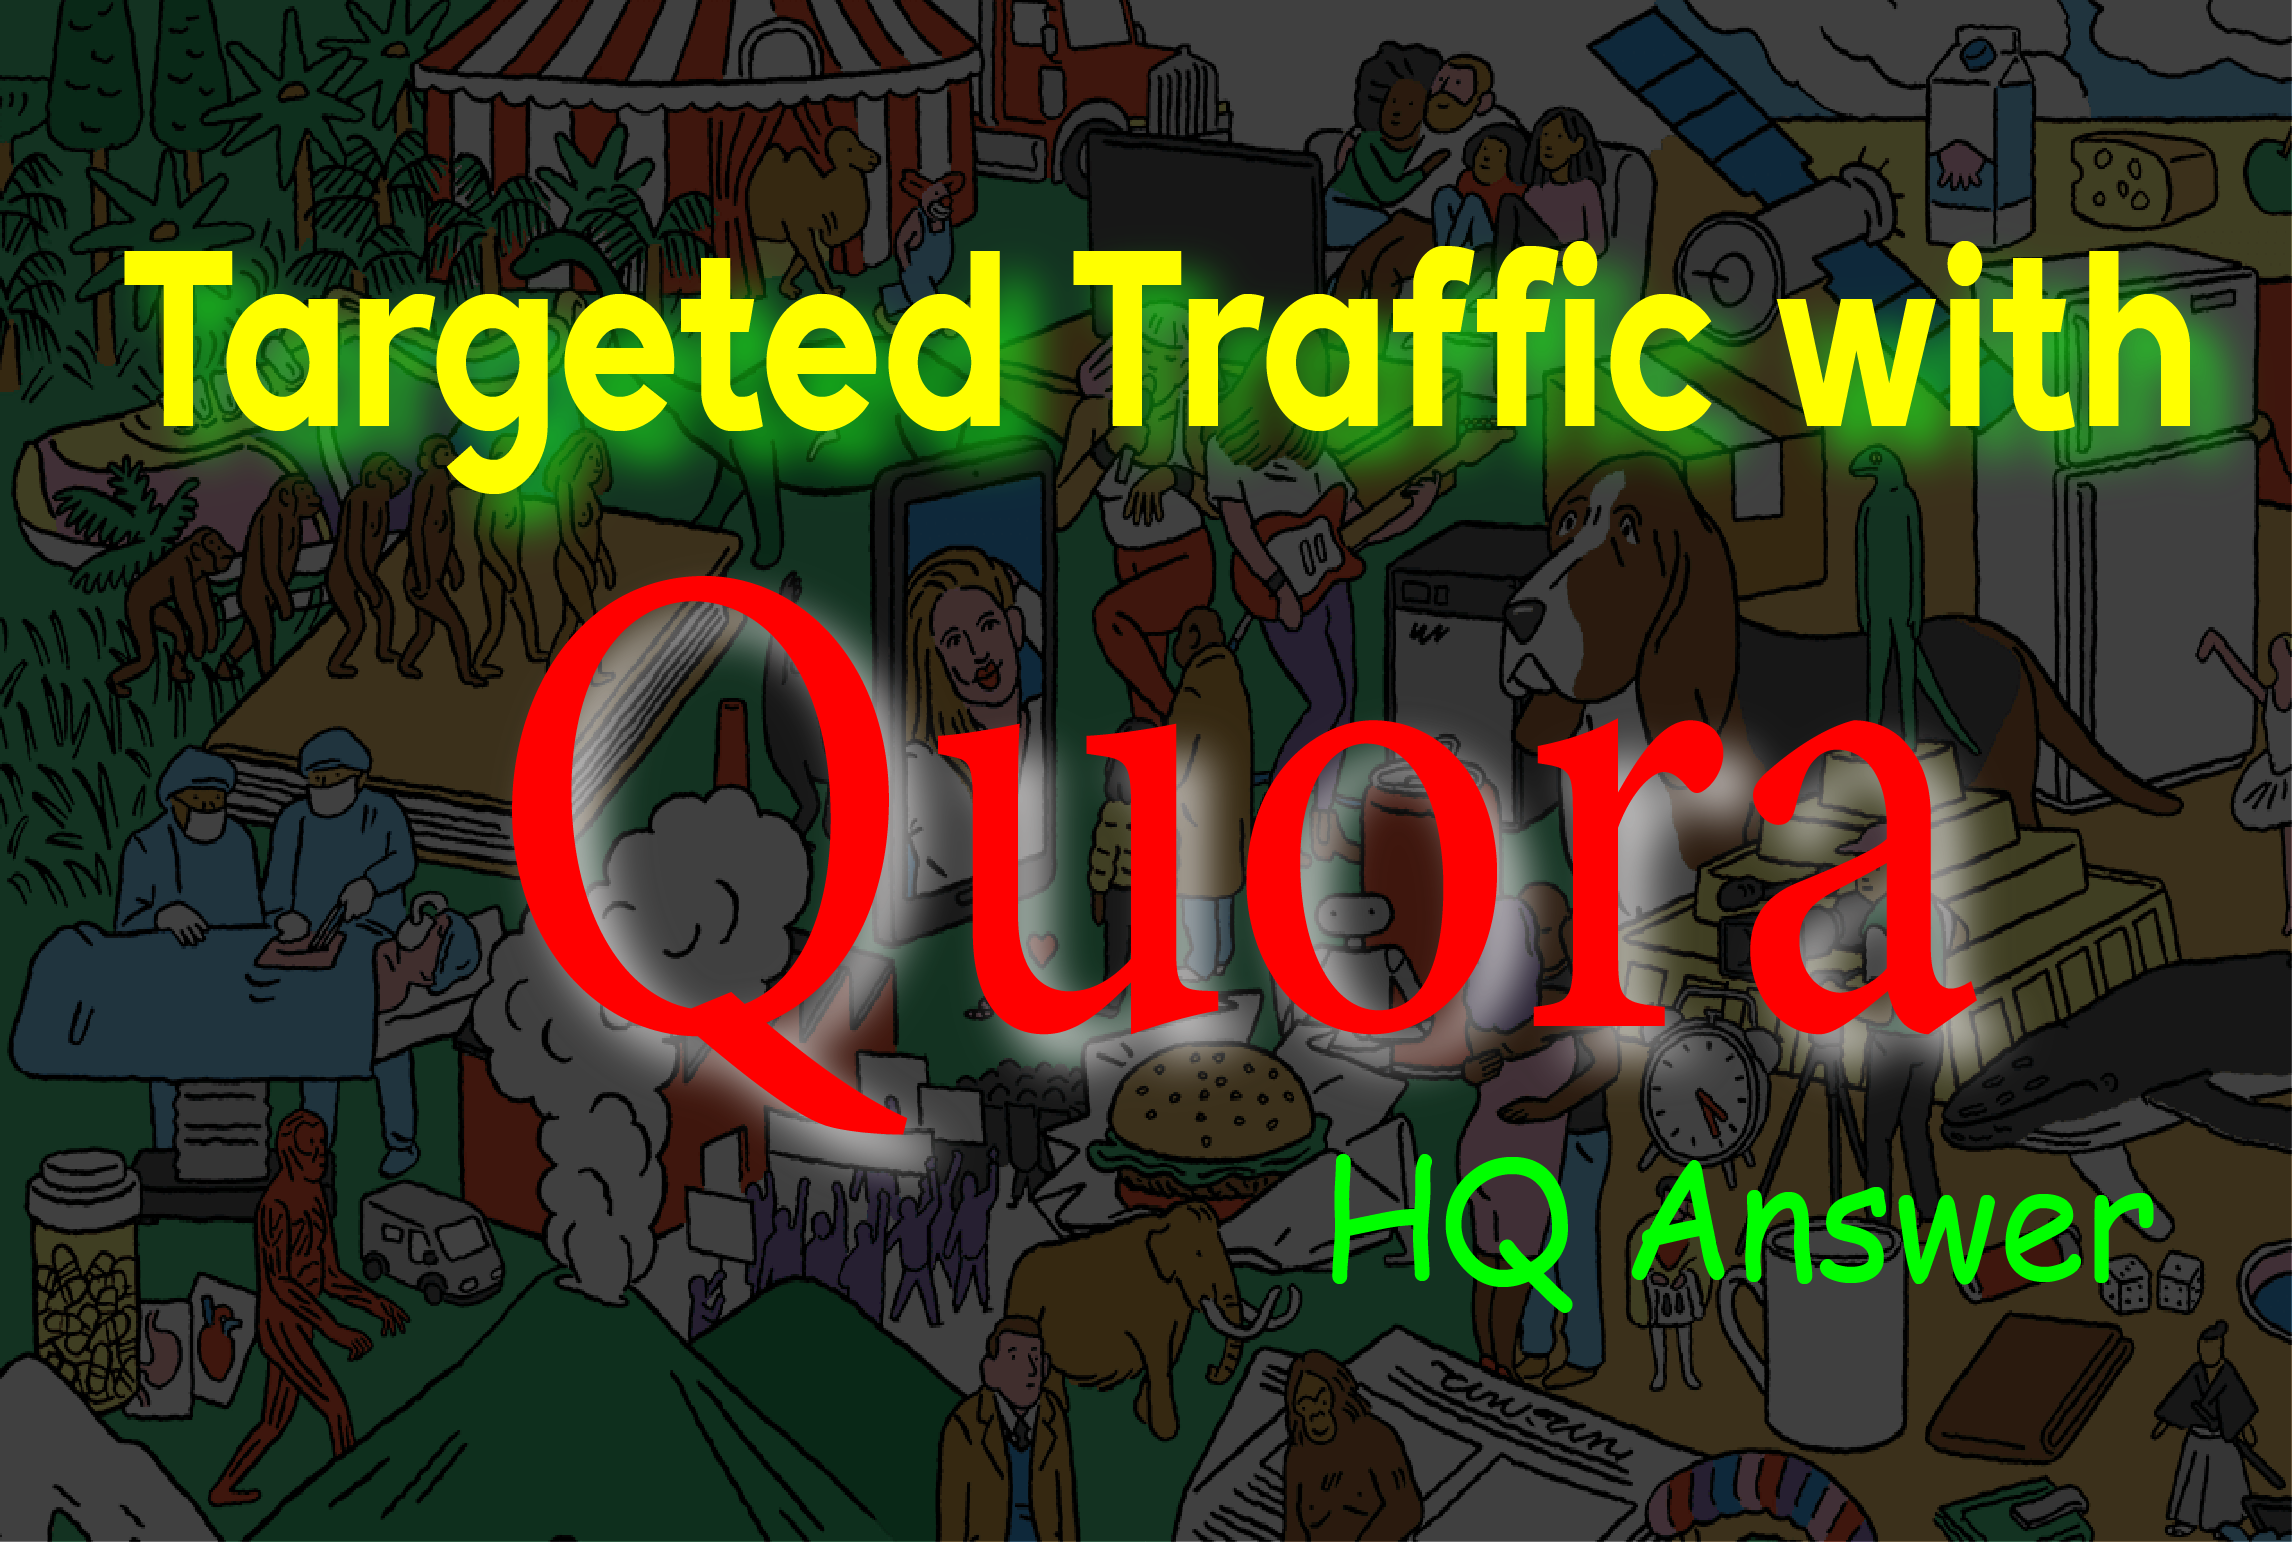 I provide HQ 50 Quora answer to promote your website